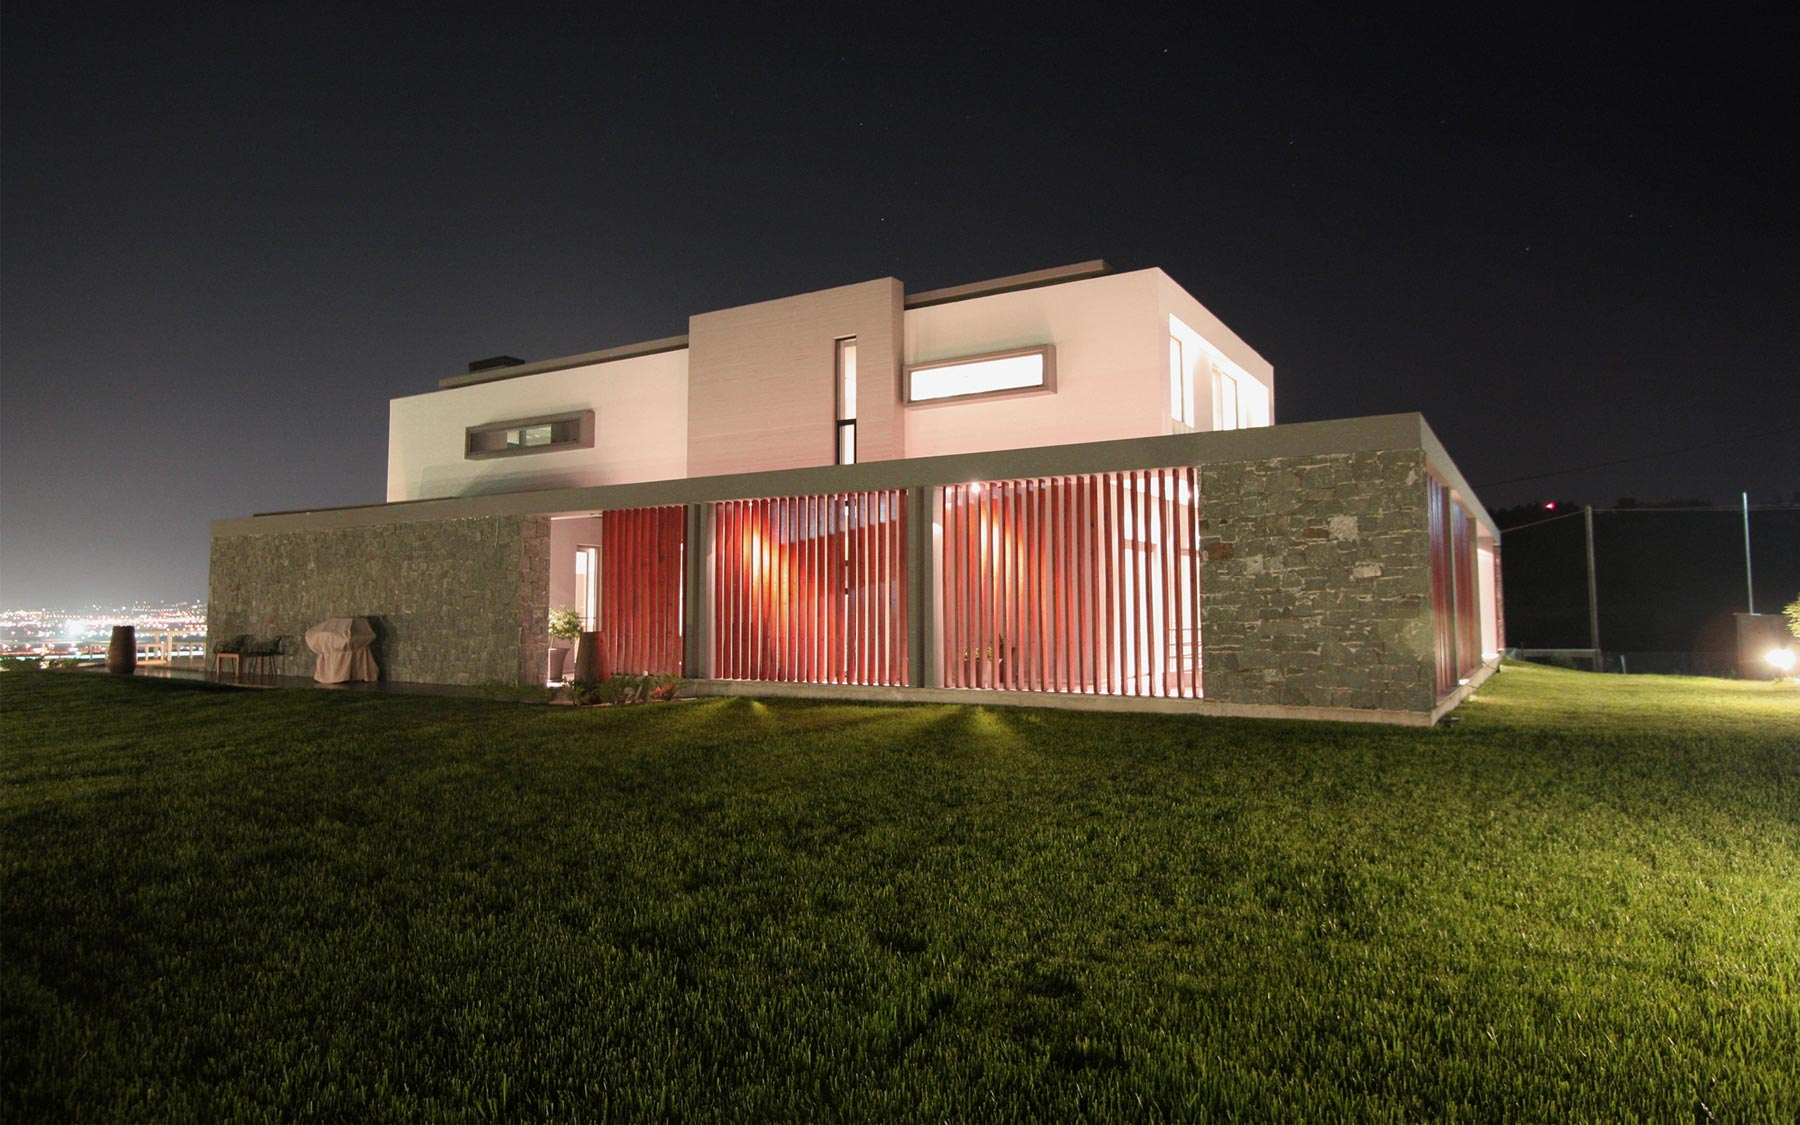 B house by office 25 architects the greek foundation for B house